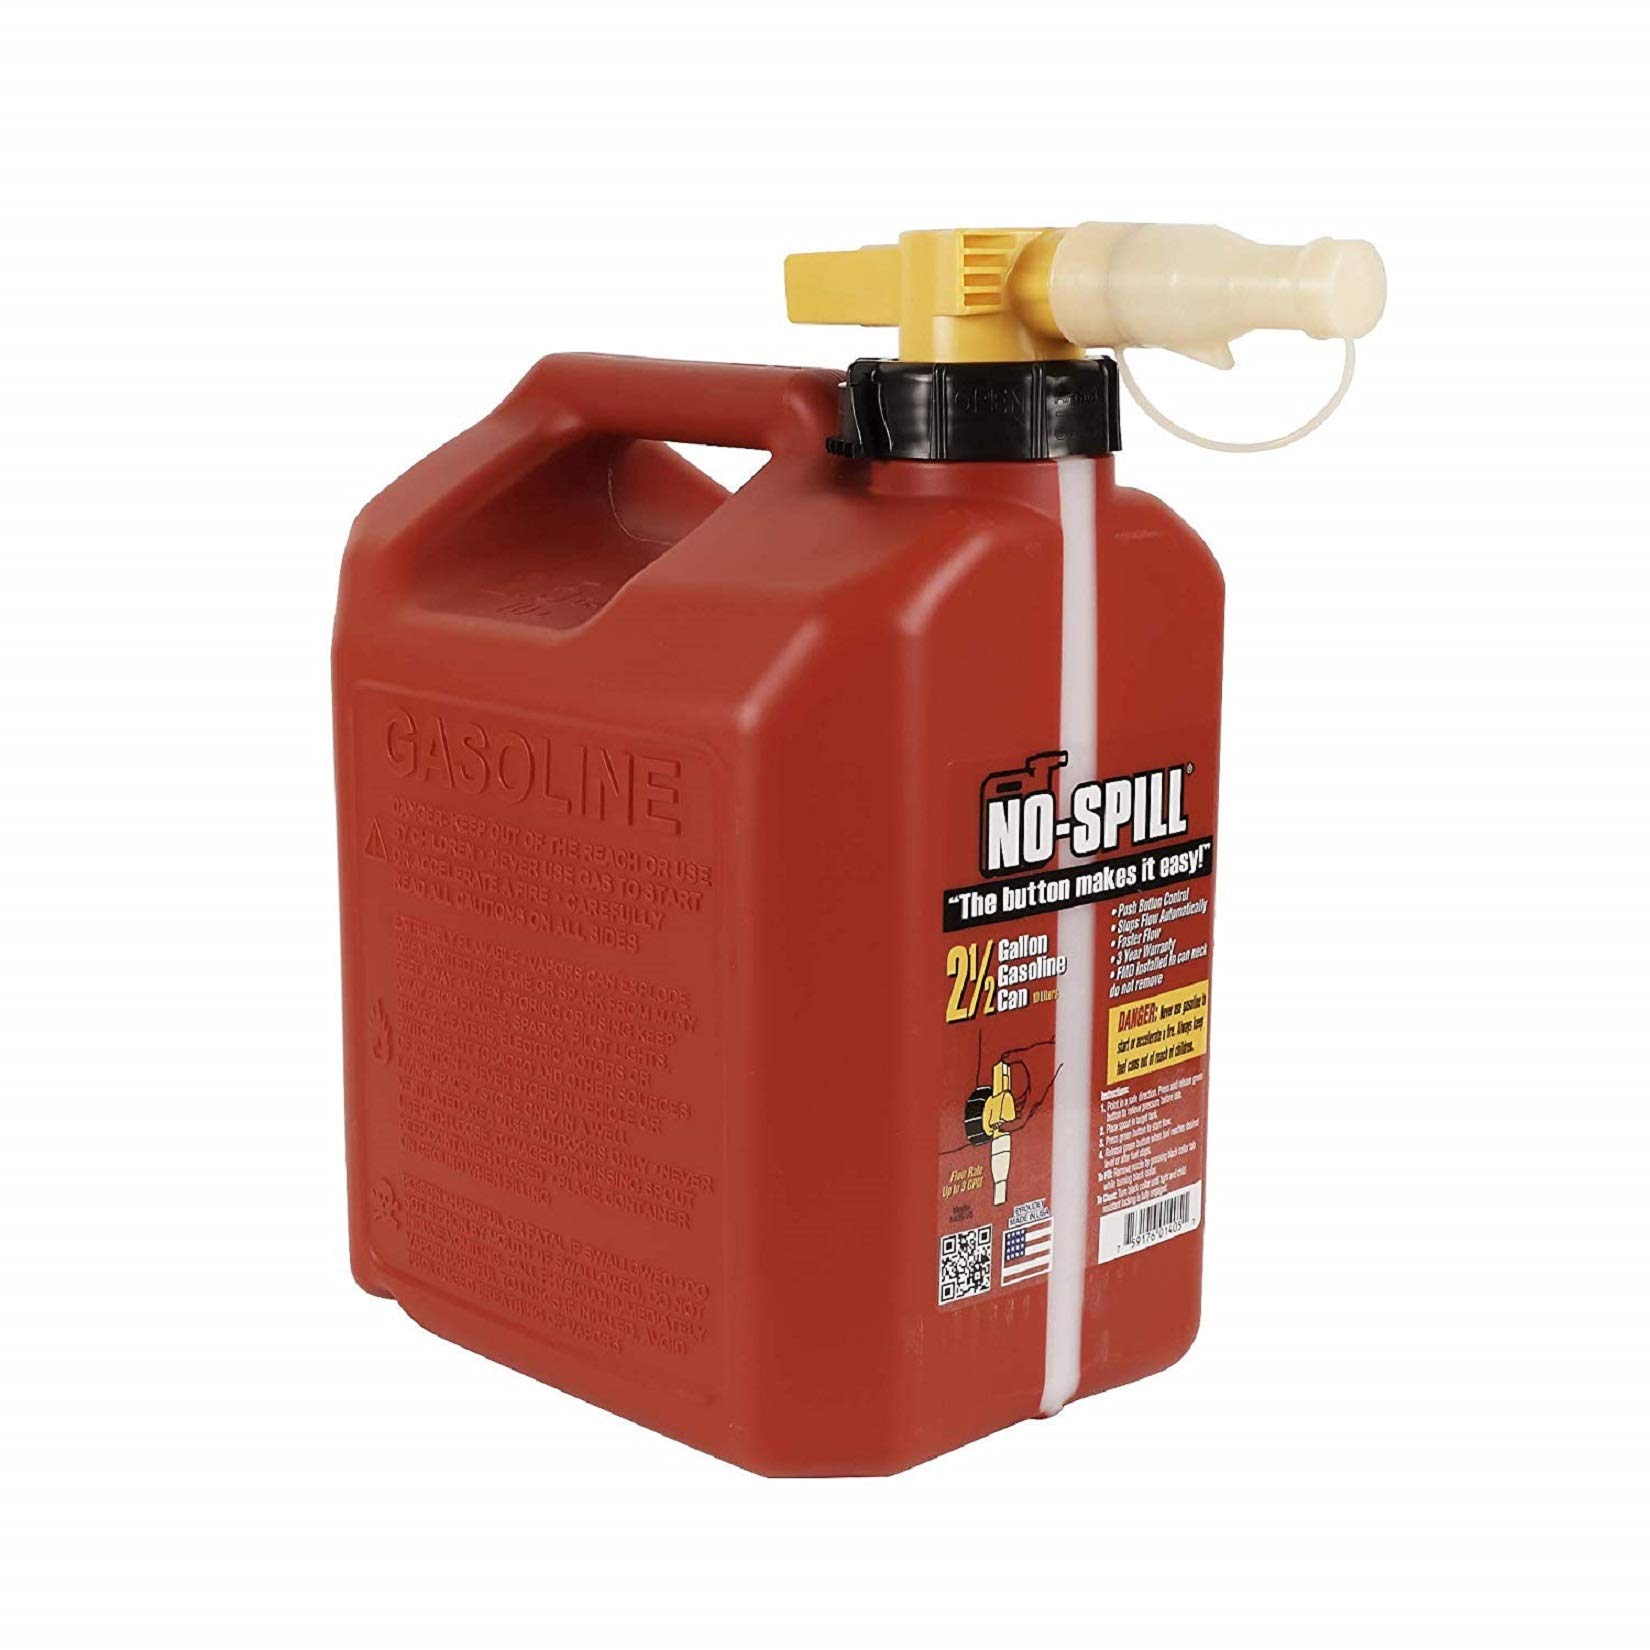 No-Spill 1405 2-1/2-Gallon Poly Gas Can (3 Pack(1-Unit))